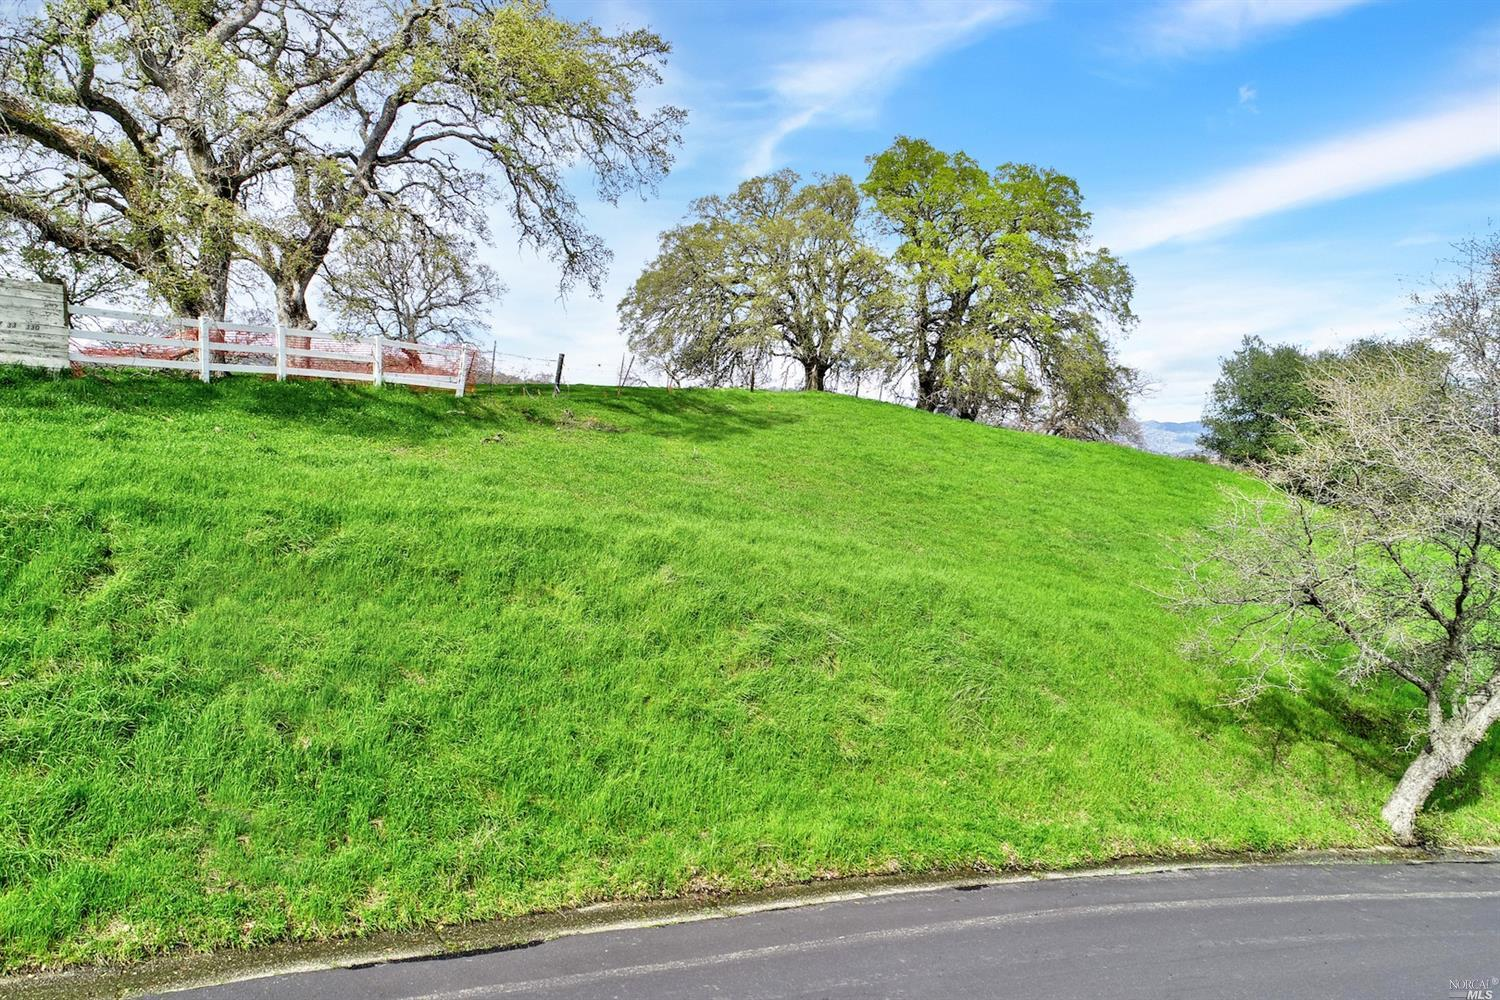 This is an amazing opportunity to own the last build-able lot in the prestigious Wykoff Estates. This incredible 25,265 sq. ft. lot is grandfathered in for water/sewer hookups for you to build your custom dream home. Enjoy the panoramic breathtaking views of tranquil rolling hills and valleys. All this is offered and the convenience of living just a couple miles from Downtown Vacaville. This is truly a trophy property, a once in a lifetime find.